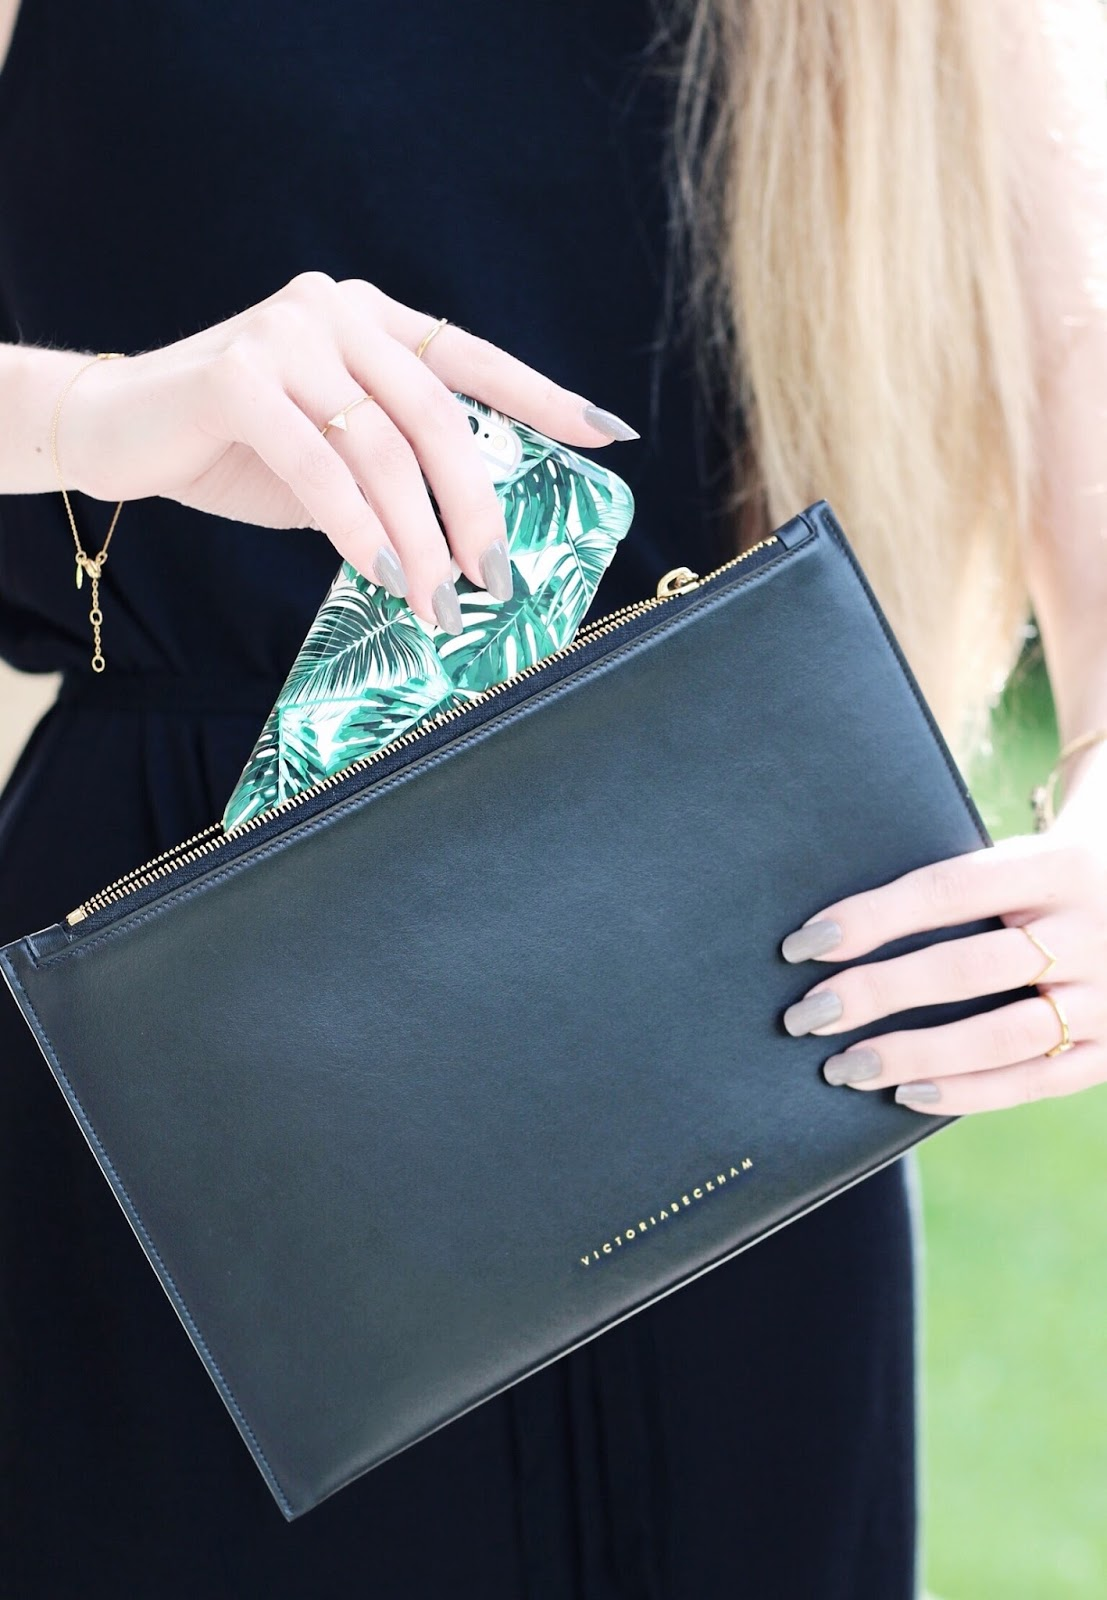 Victoria Beckham Black Clutch Farfetch Blog Collaboration